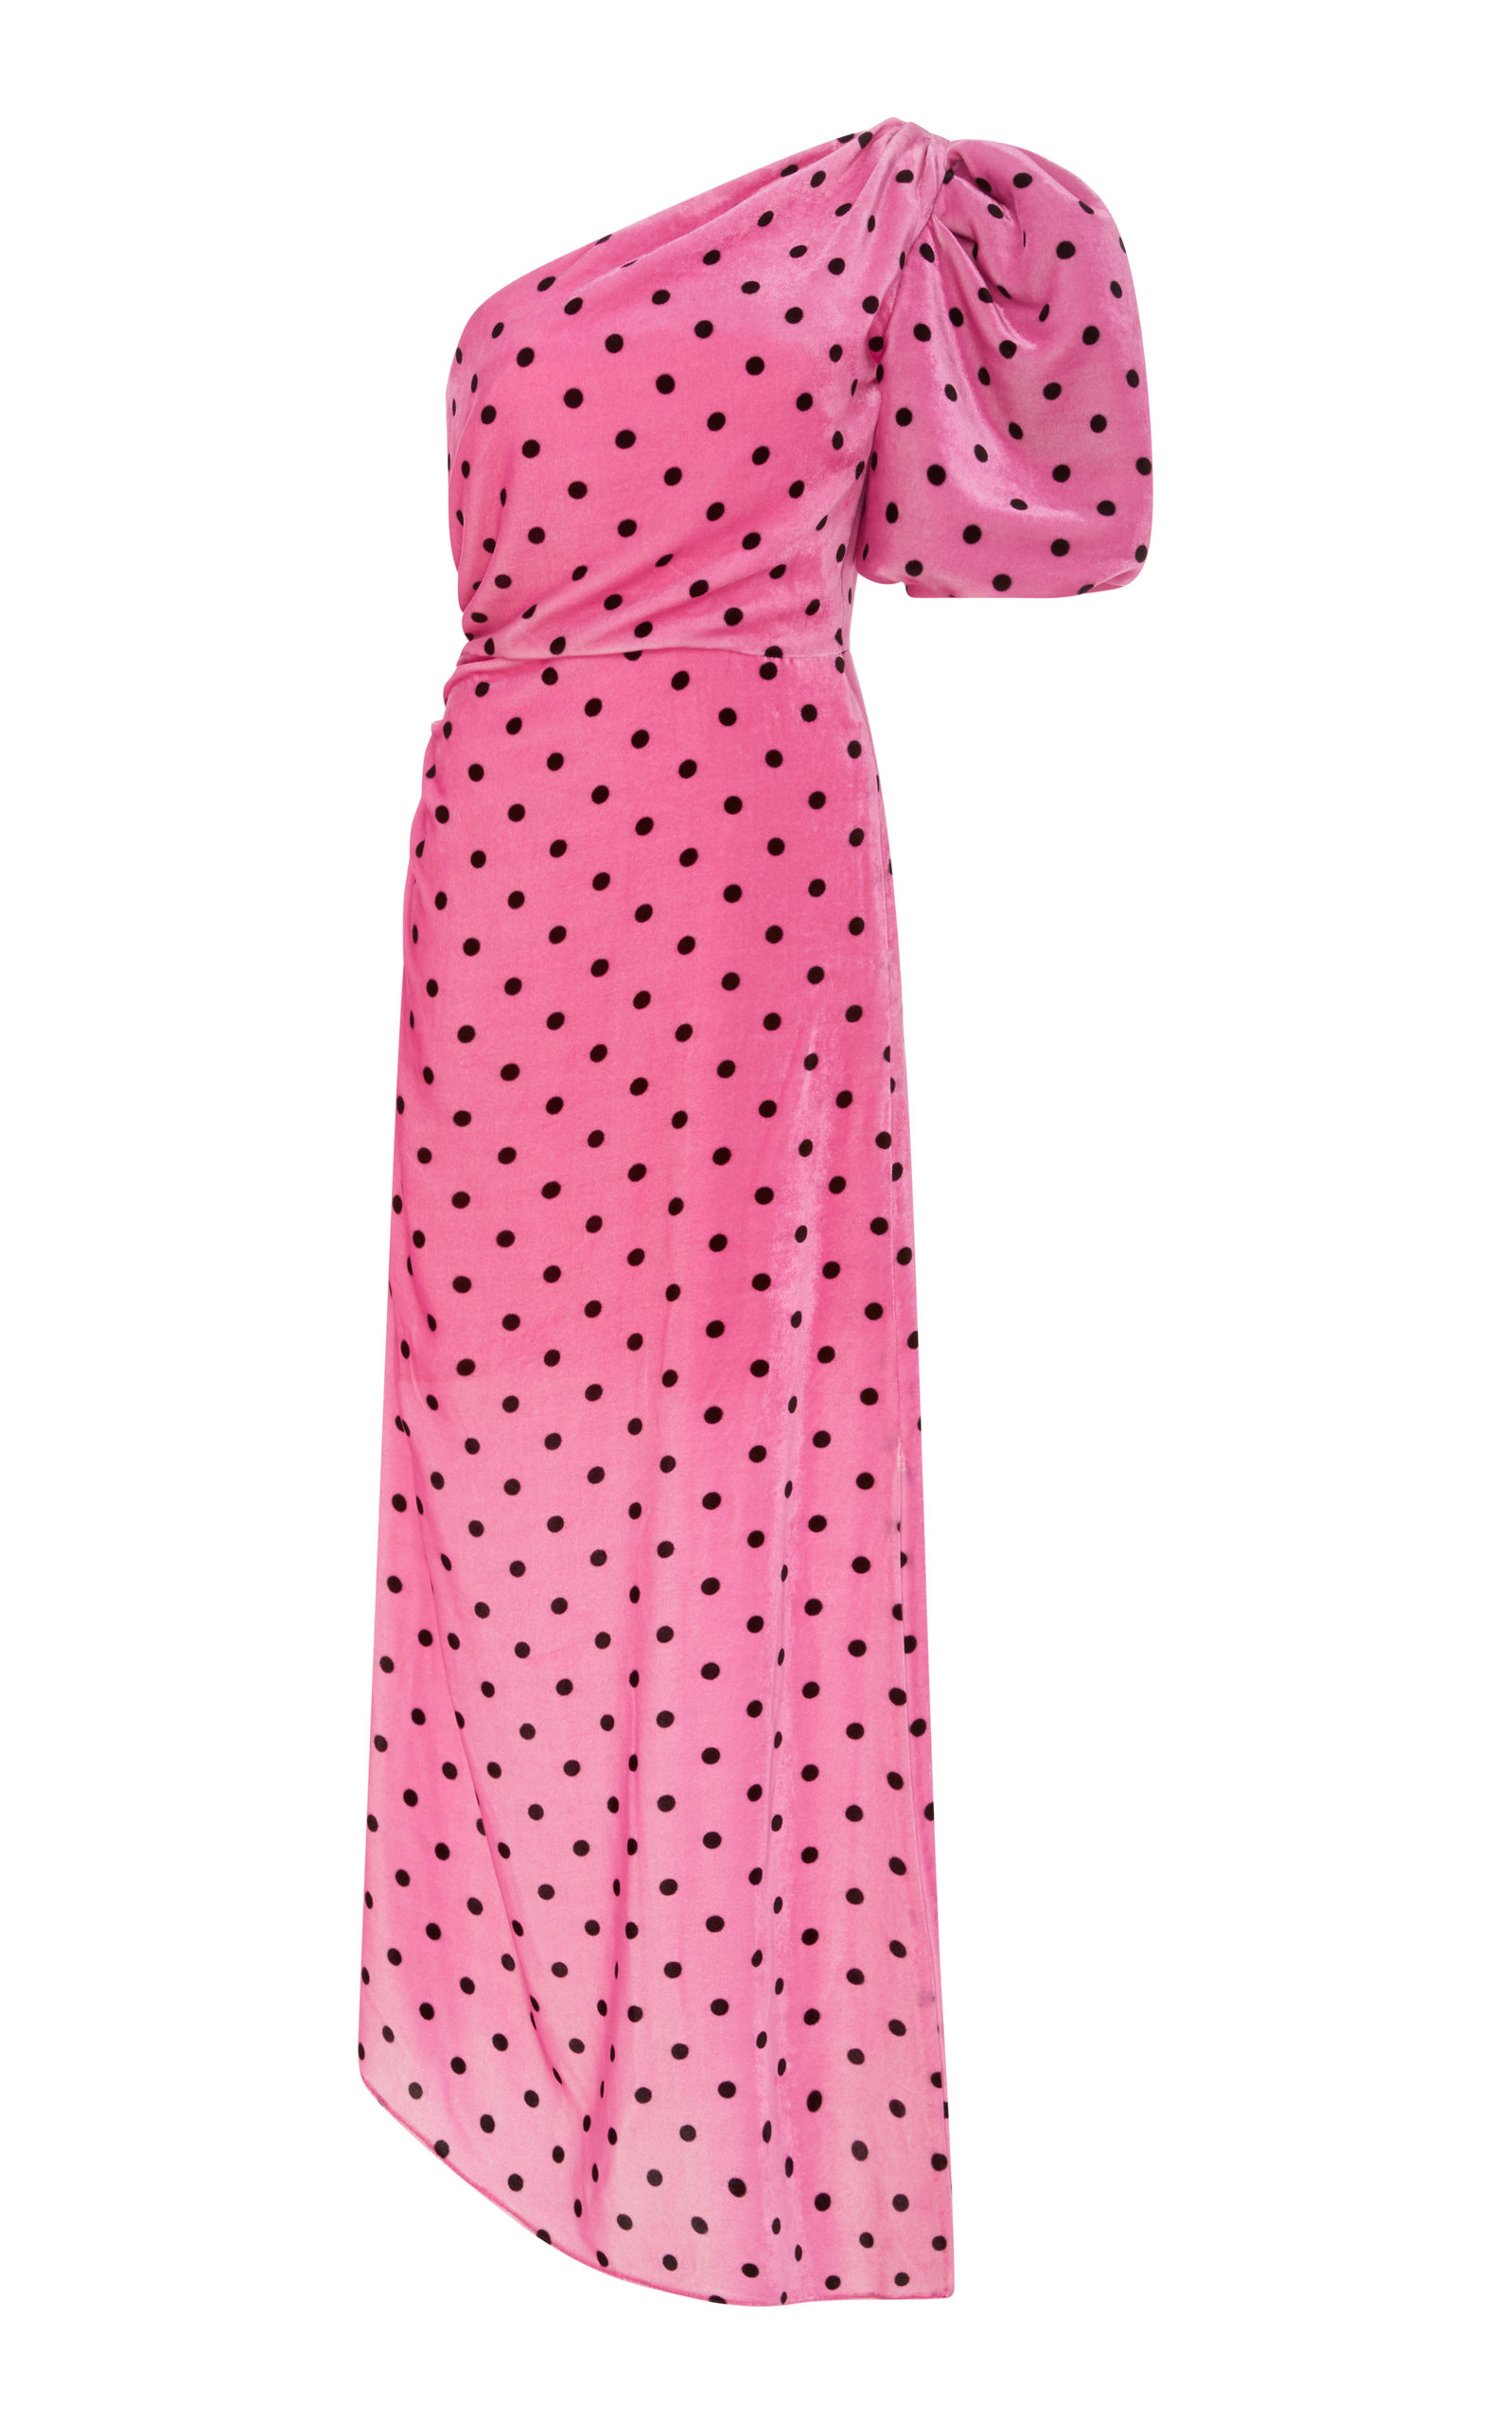 MONET ONE-SHOULDER POLKA-DOT SATIN MIDI DRESS